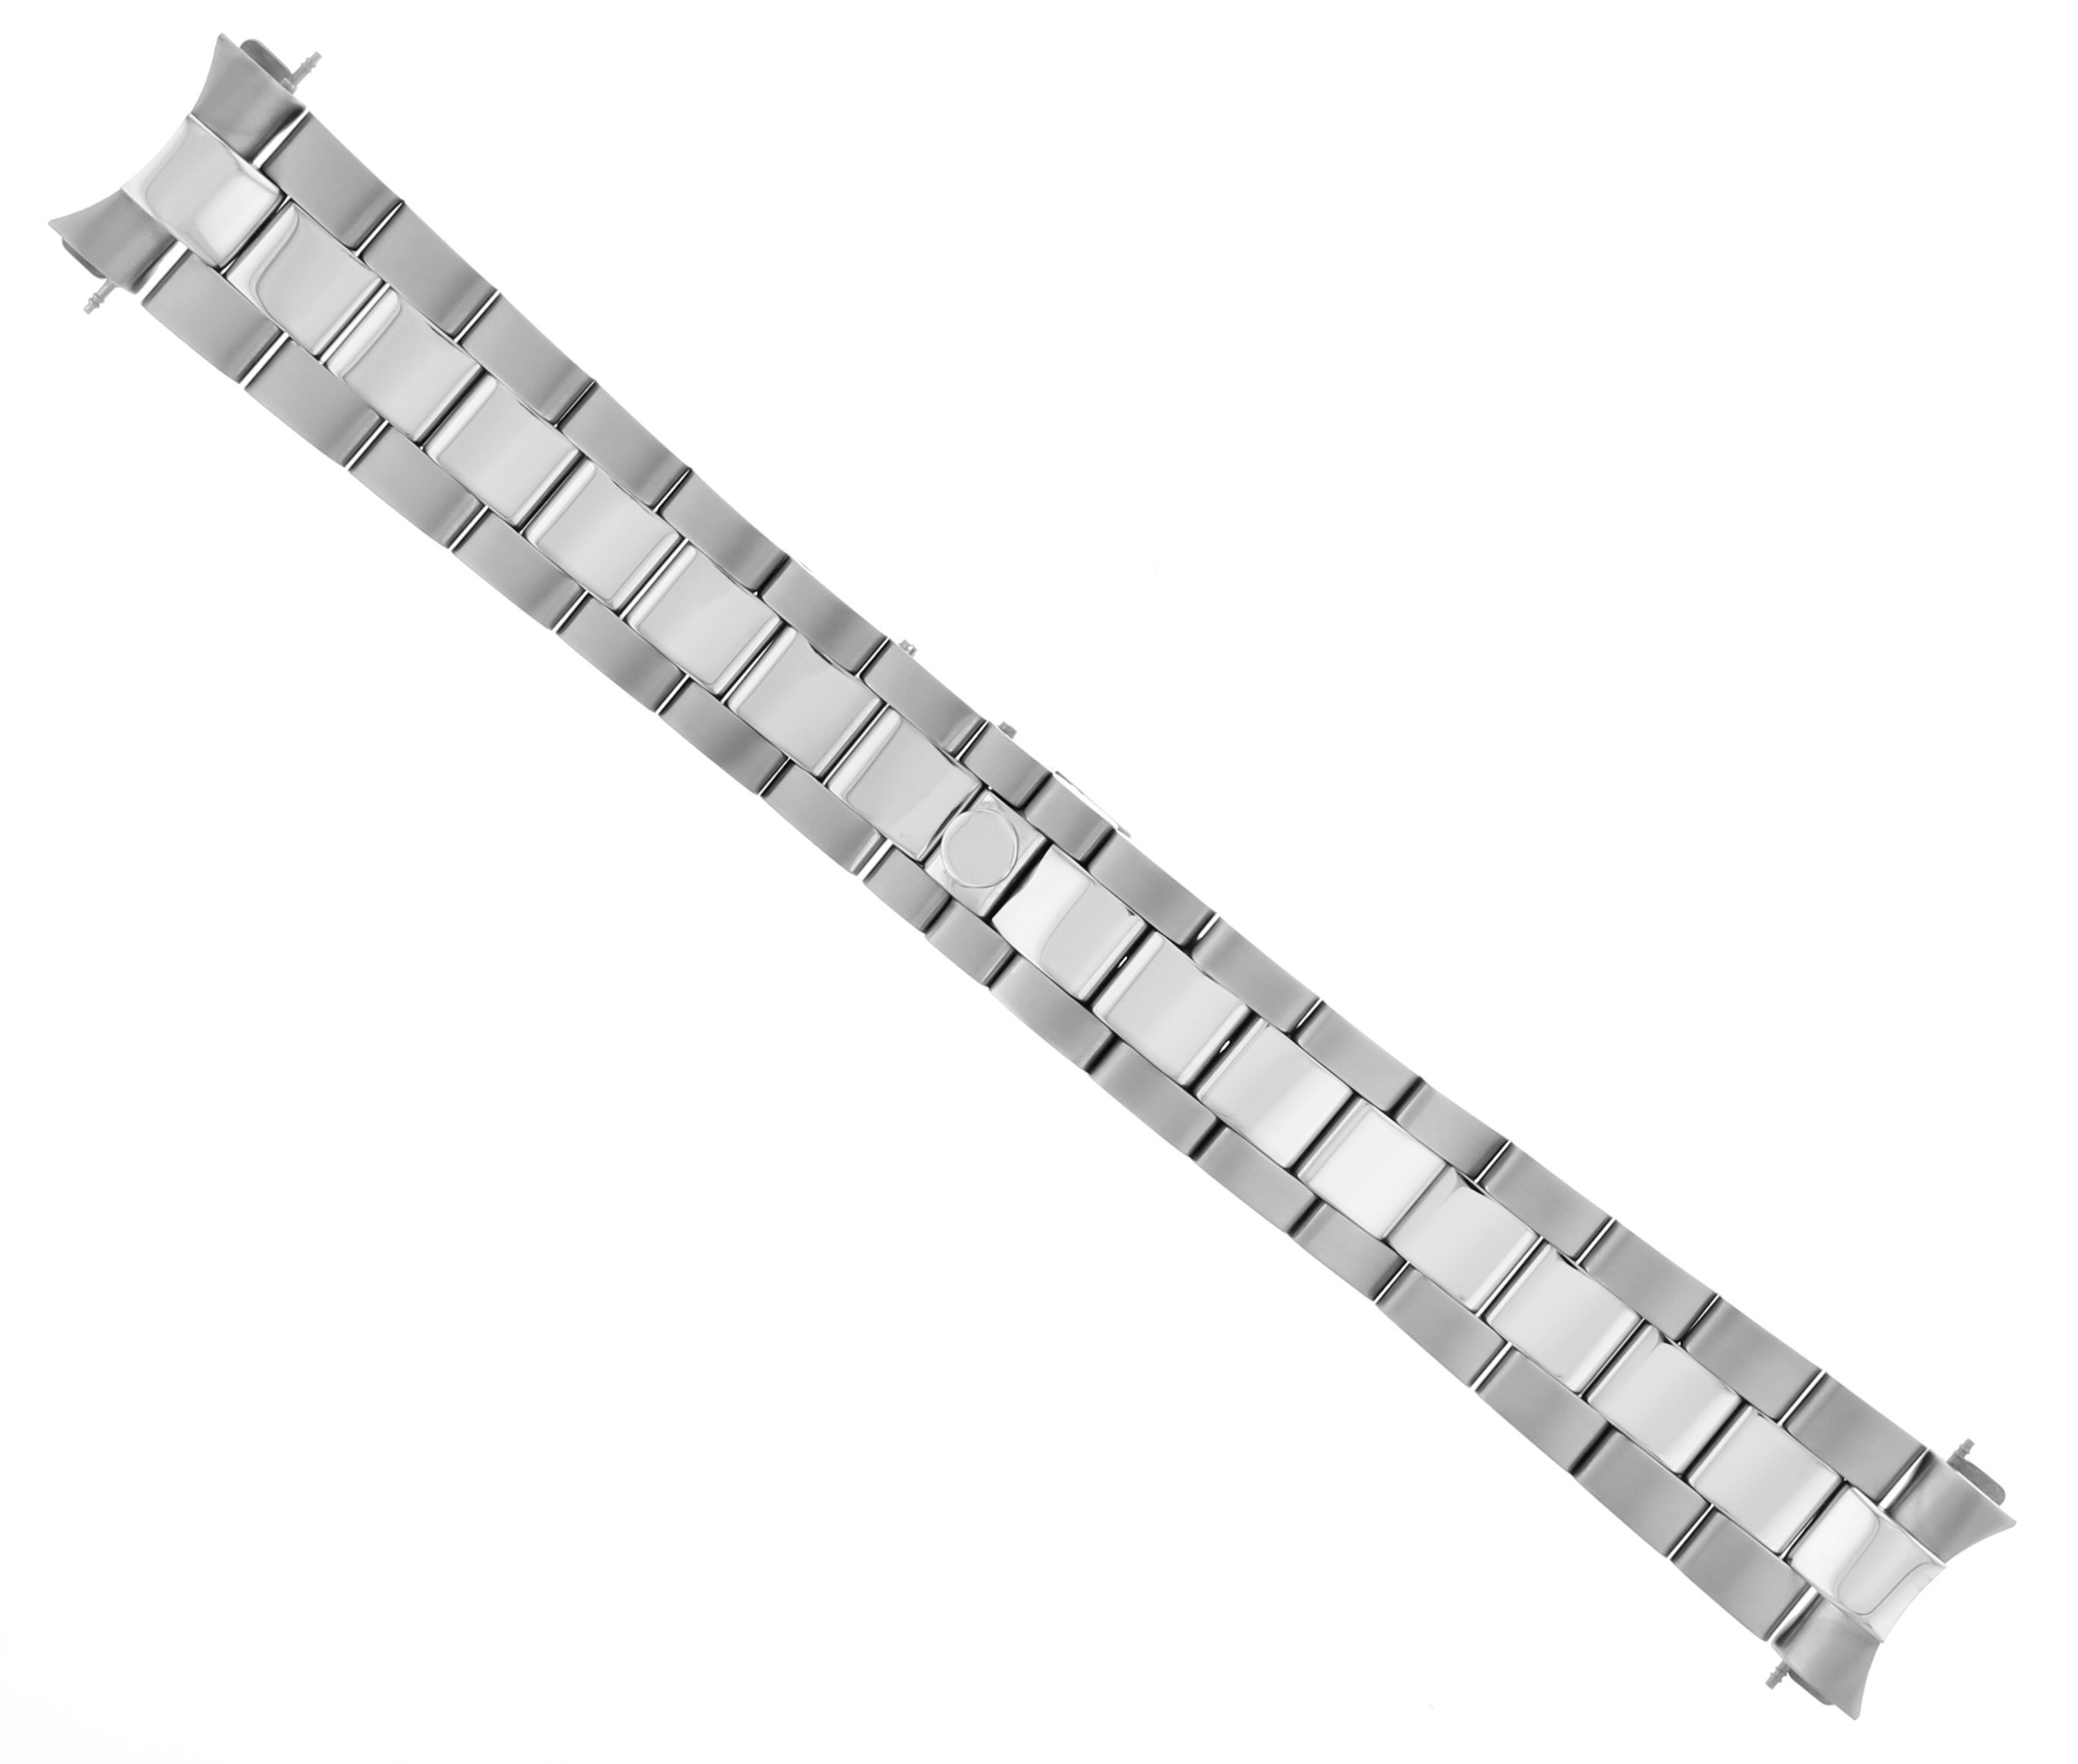 OYSTER WATCH BAND STAINLESS STEEL NEW STYLE FOR ROLEX  HIDDEN CLASP SHINY/CENTRR